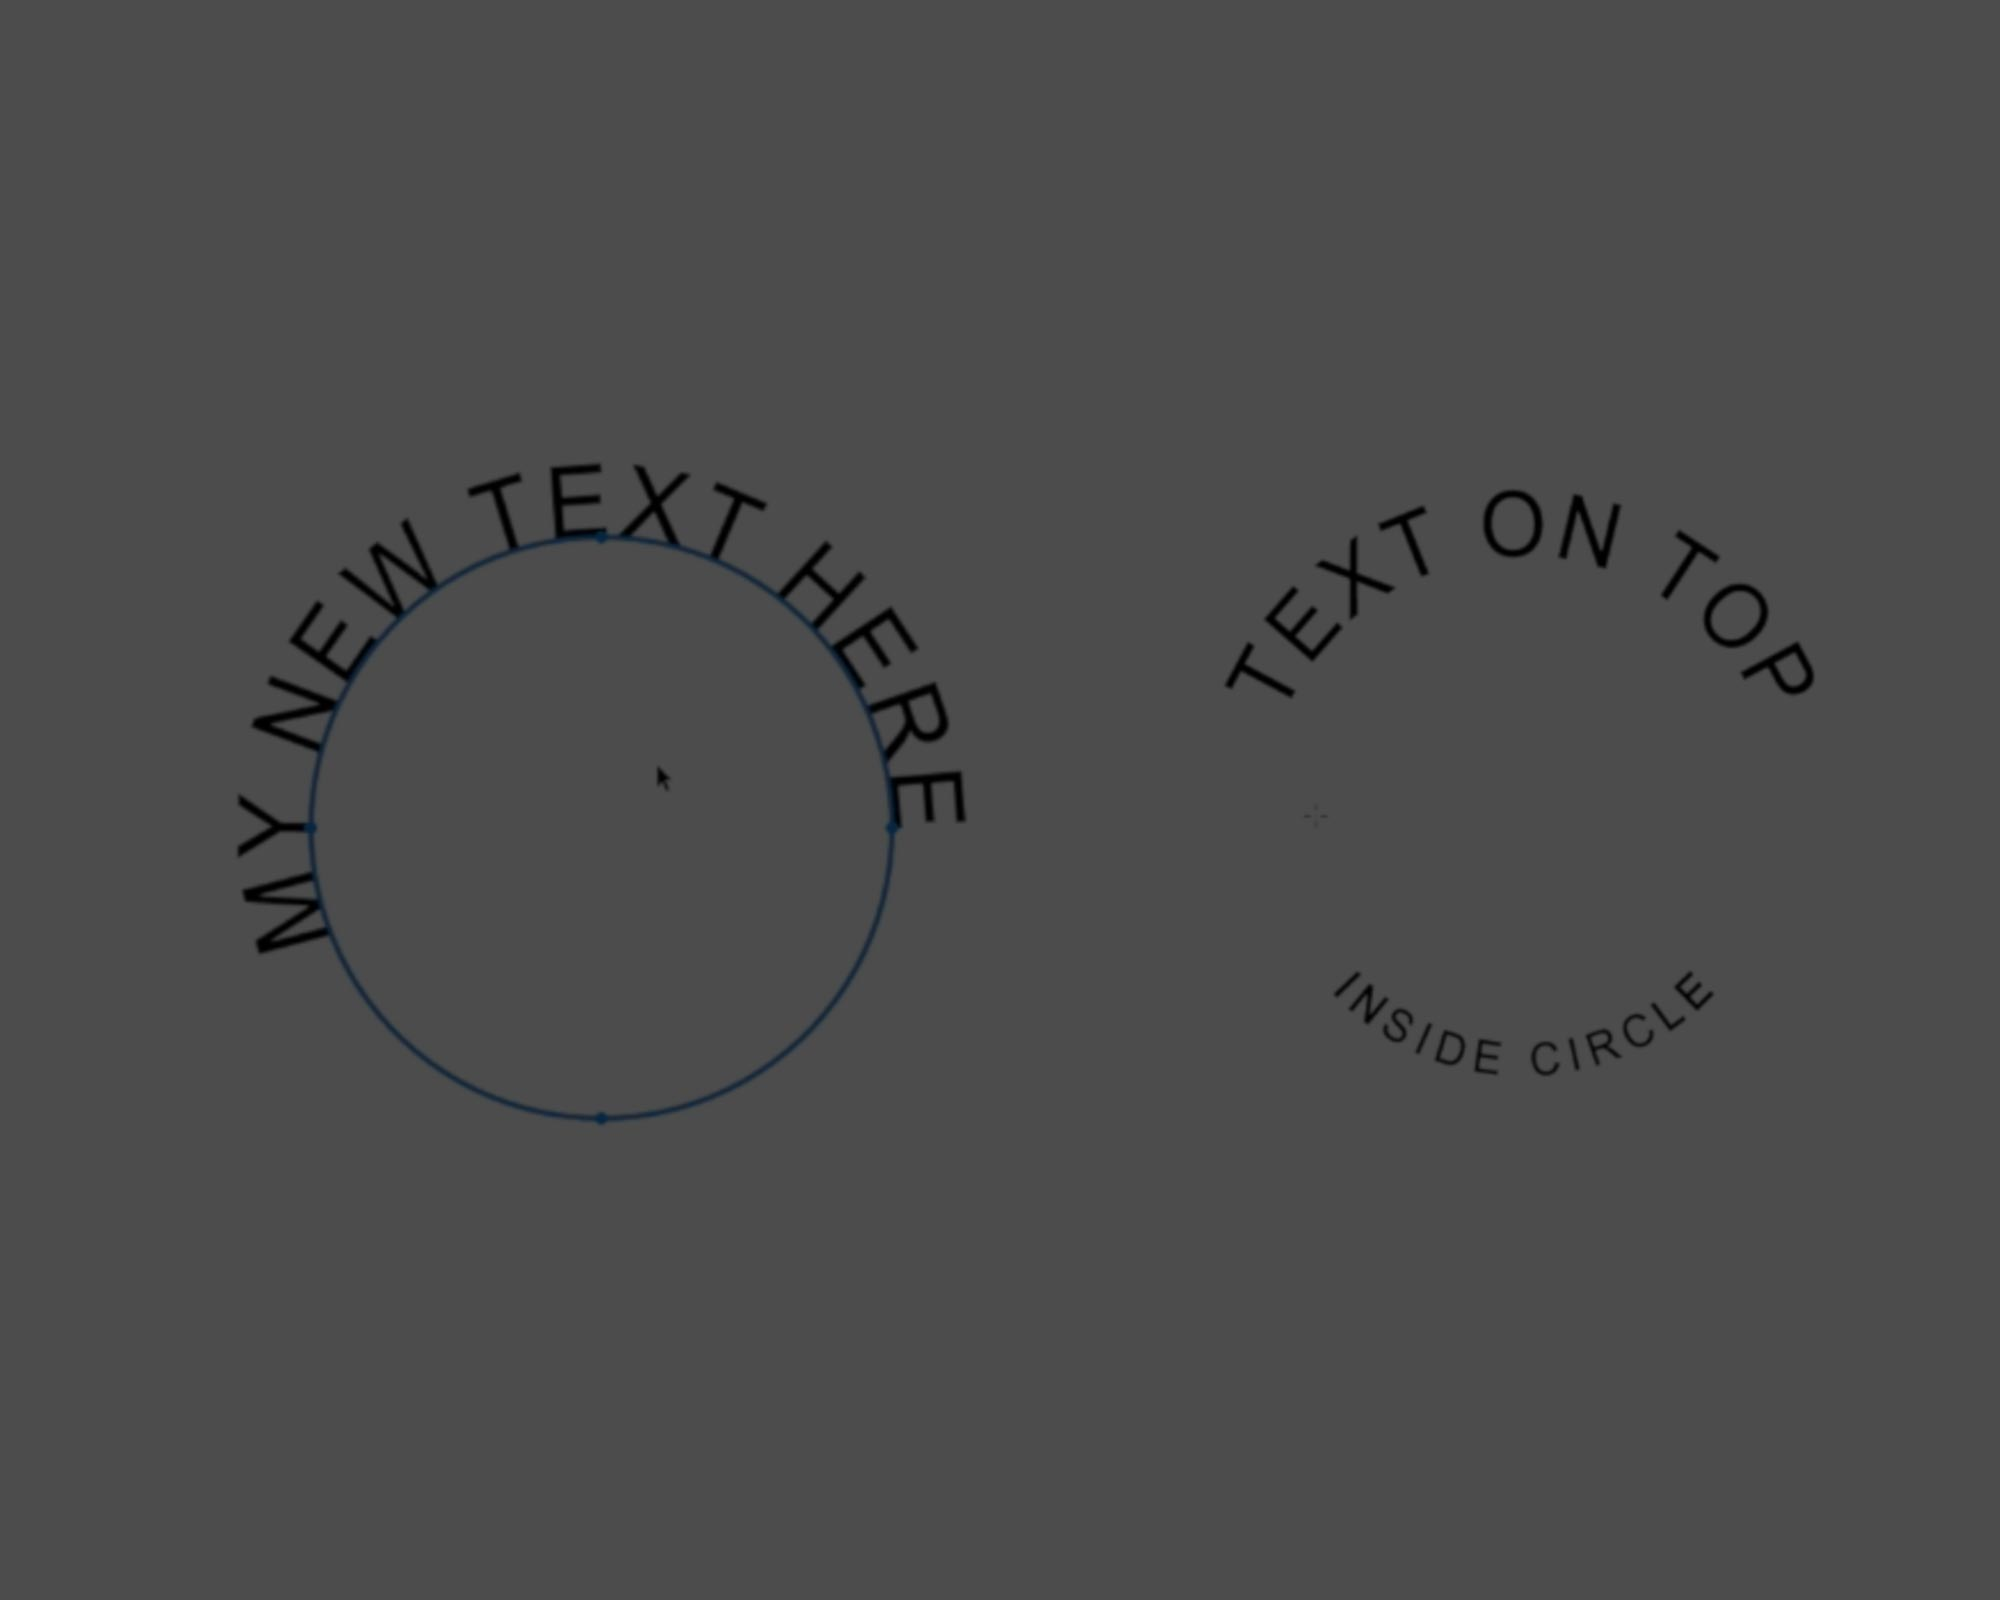 How to Type Text in Circle in Photoshop!